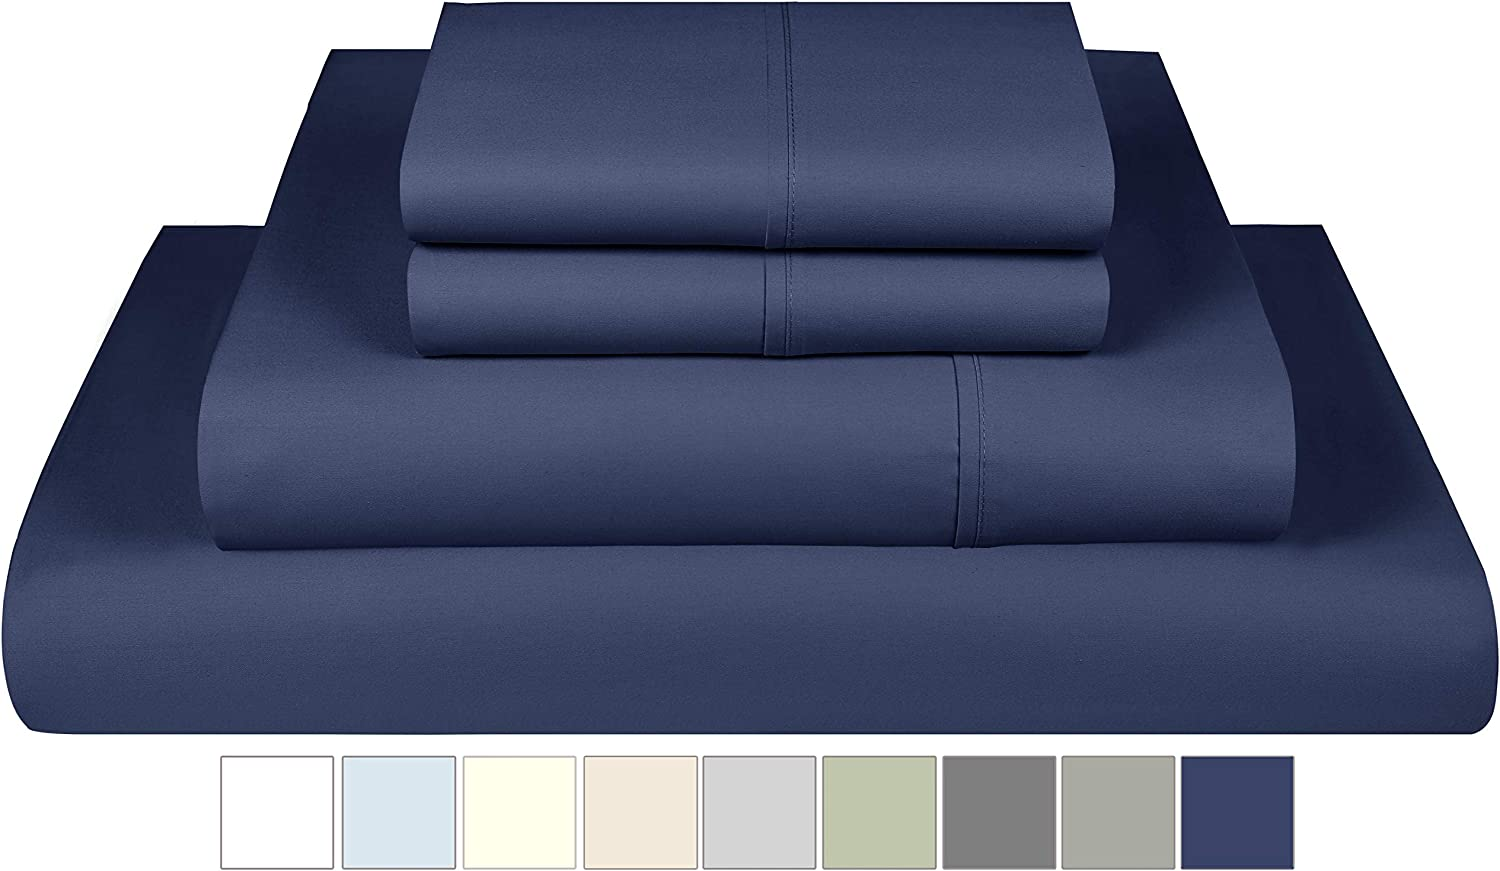 800 Thread Count Sheets Queen Size - 100% Cotton 4 Piece Bed Sheet Set with Deep Pocket, Smooth Sateen, Queen Bedding, Folkstone Blue